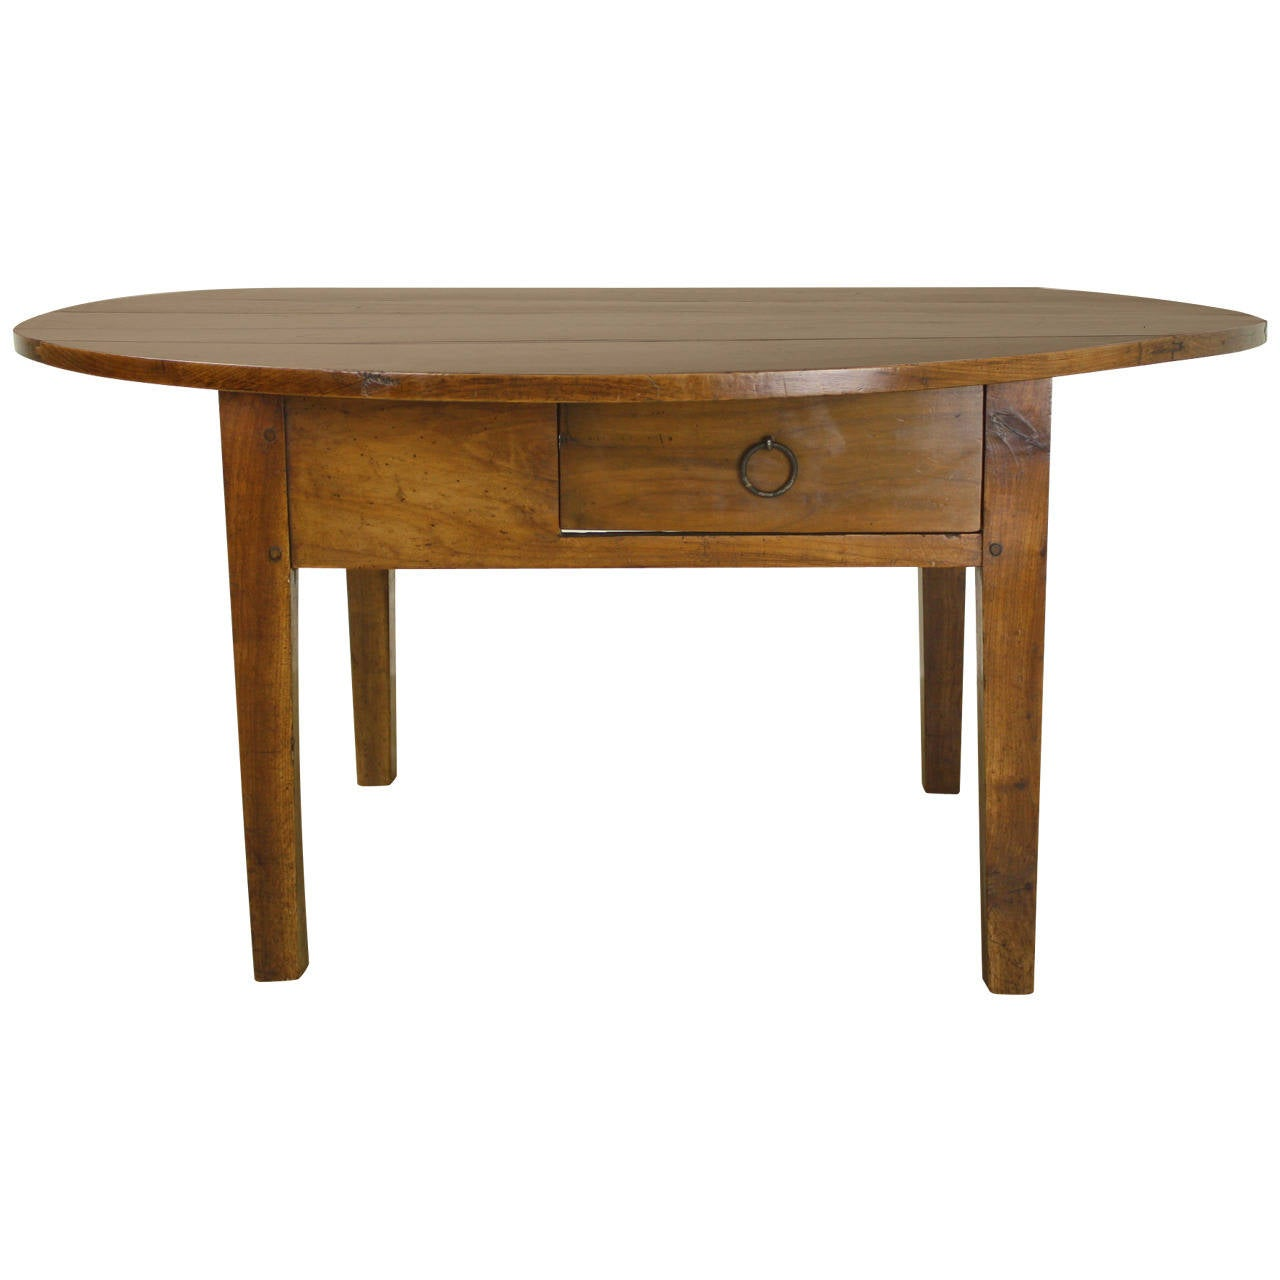 Oval Coffee Table Antique: Antique Oval Cherry Coffee Table At 1stdibs